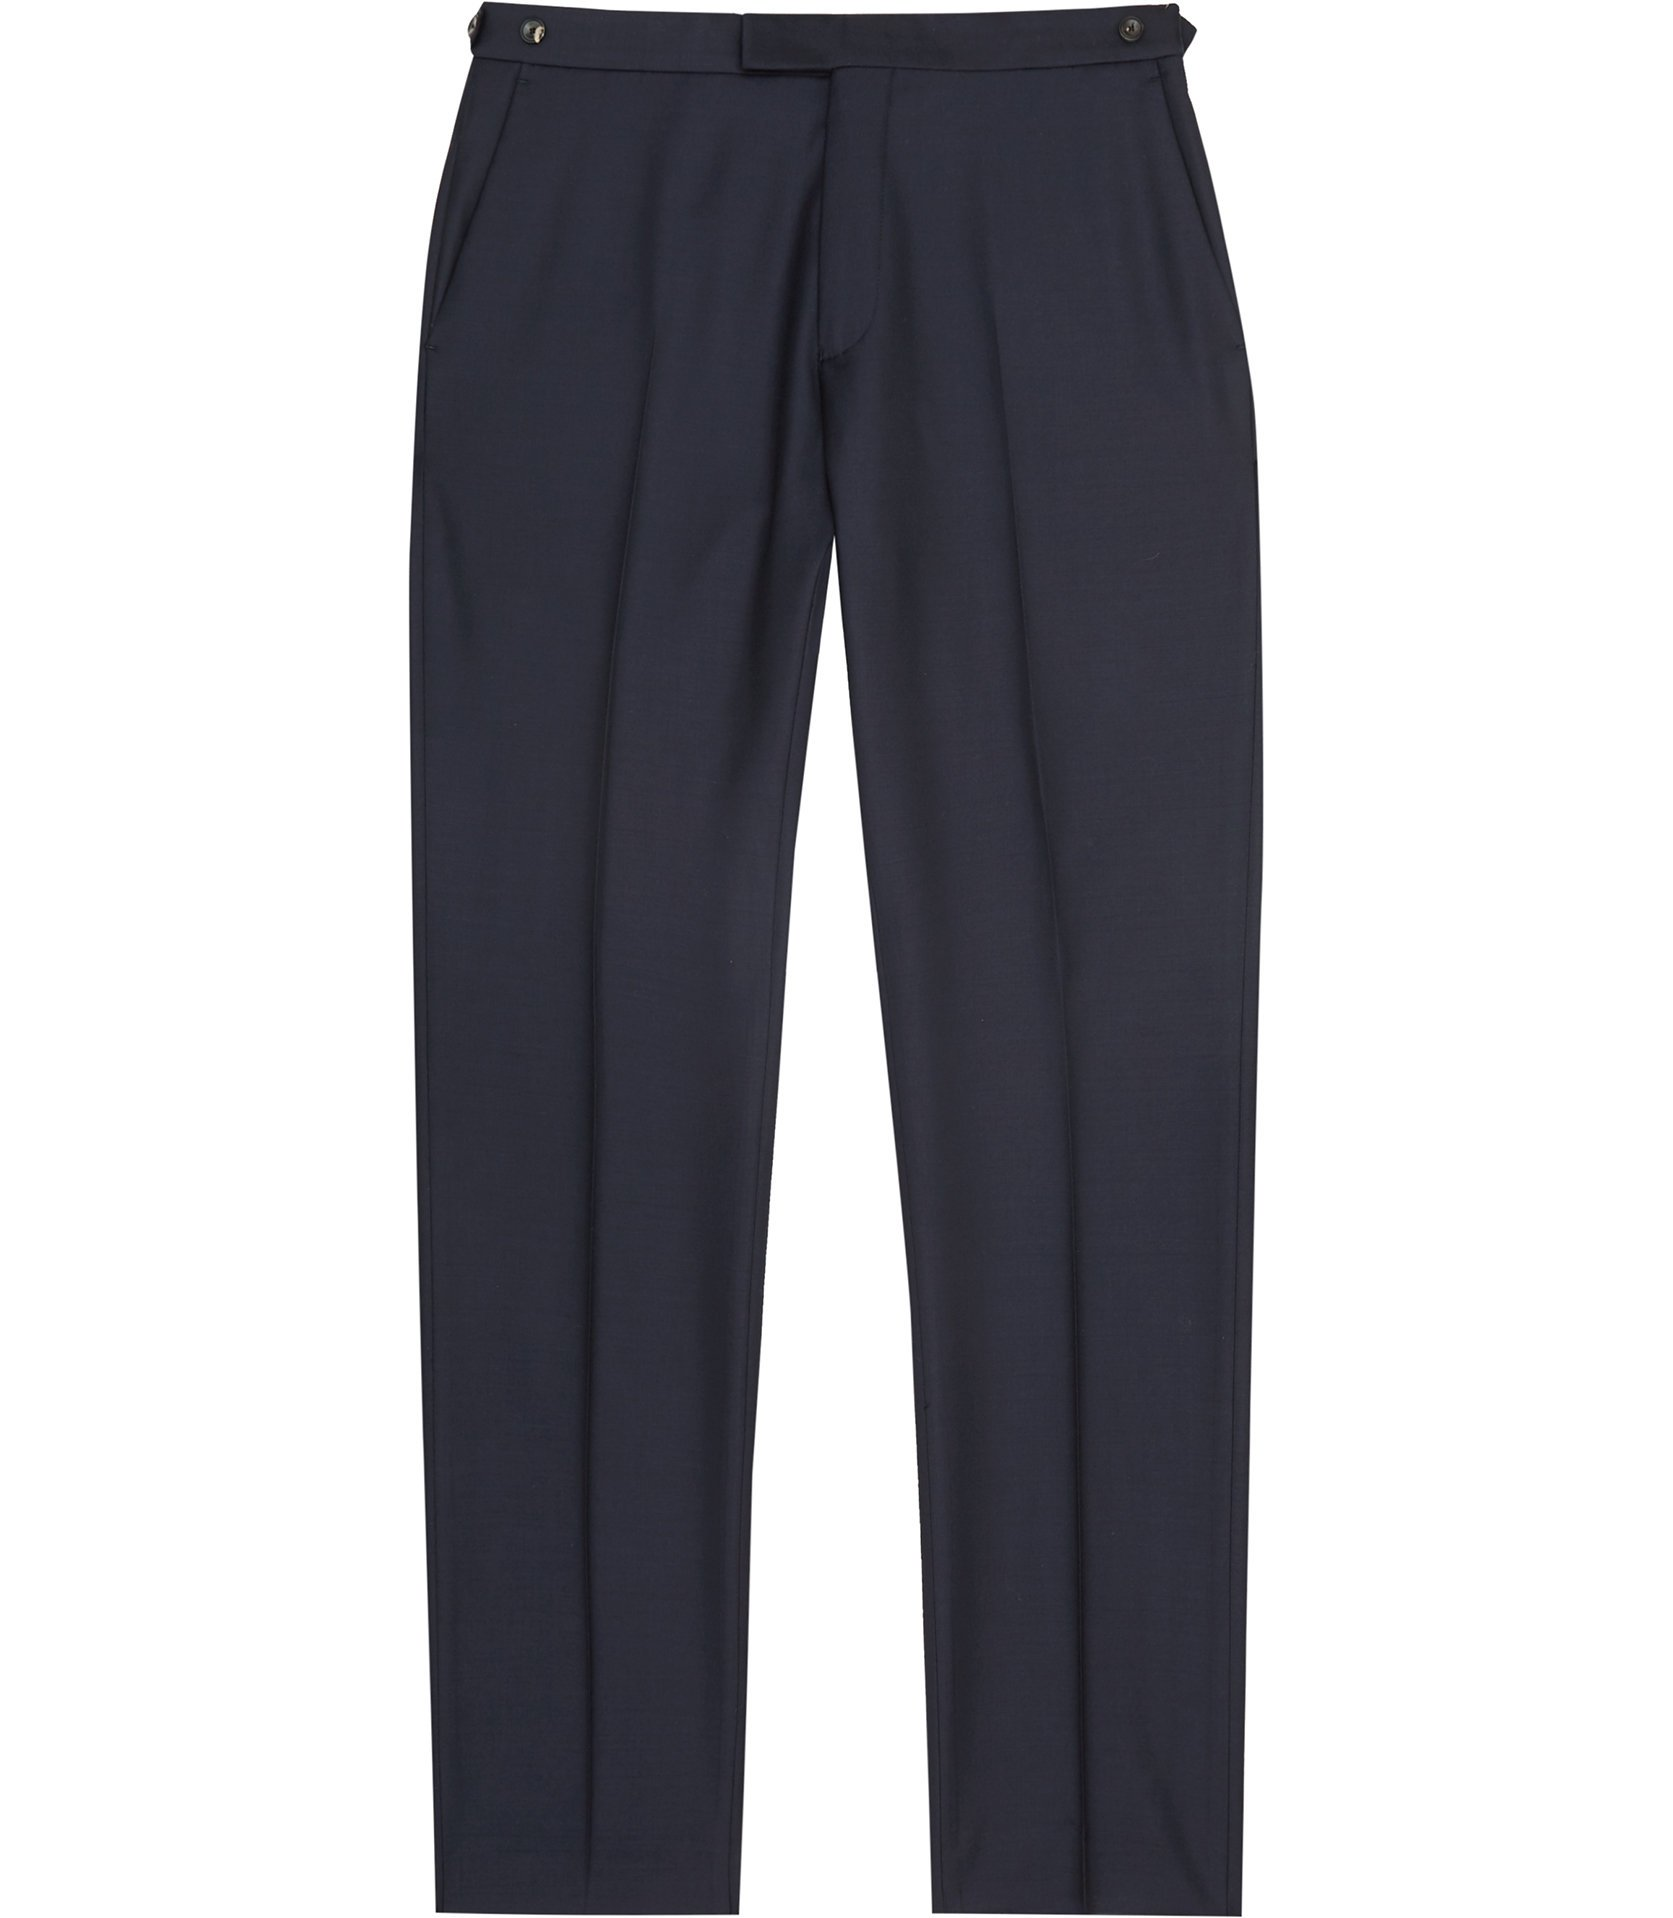 Reiss Navy Slim-Fit Trouser